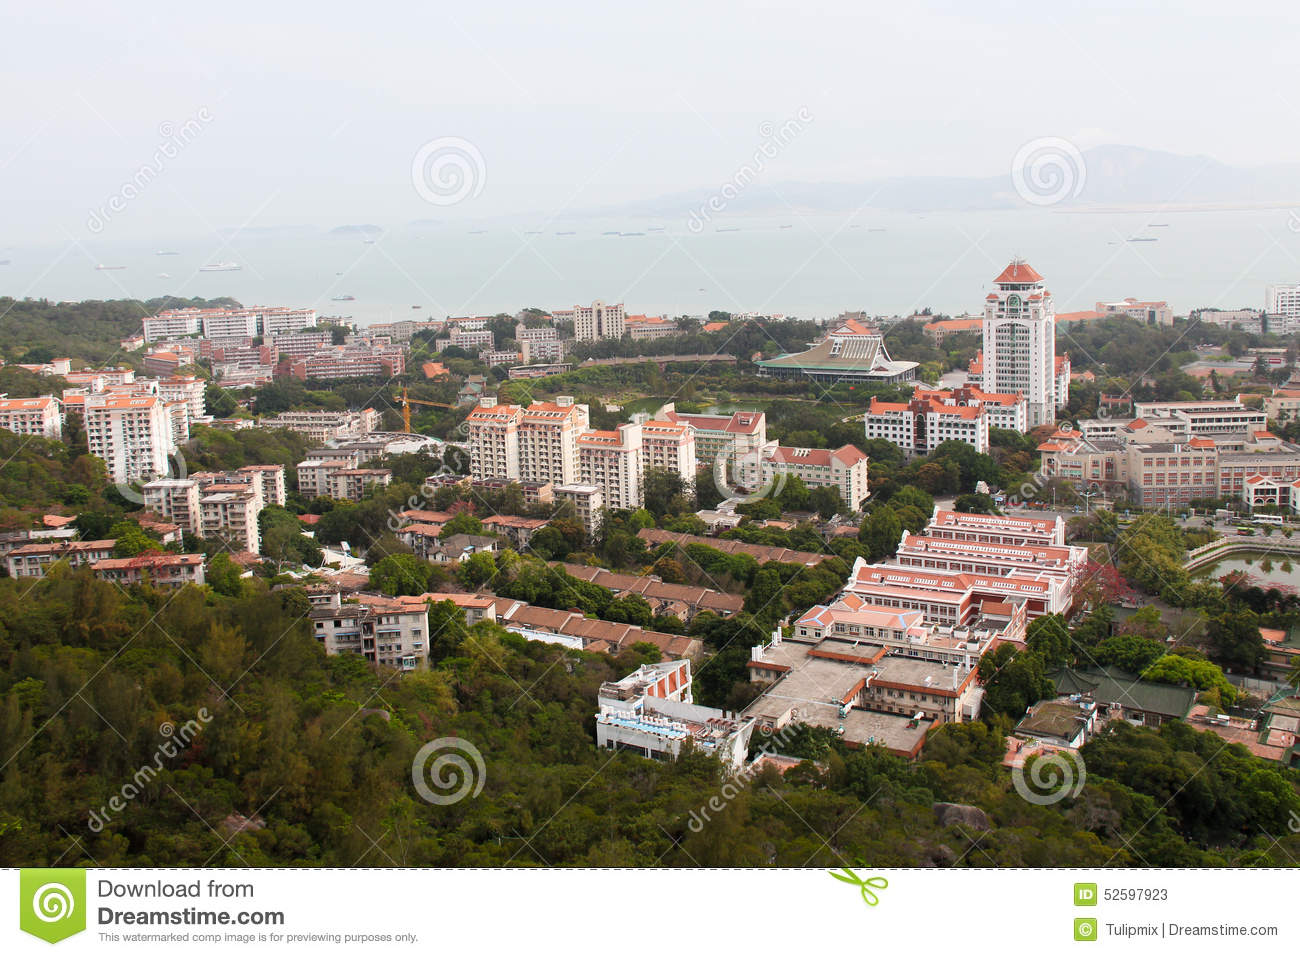 Buy a doctoral dissertations xiamen university